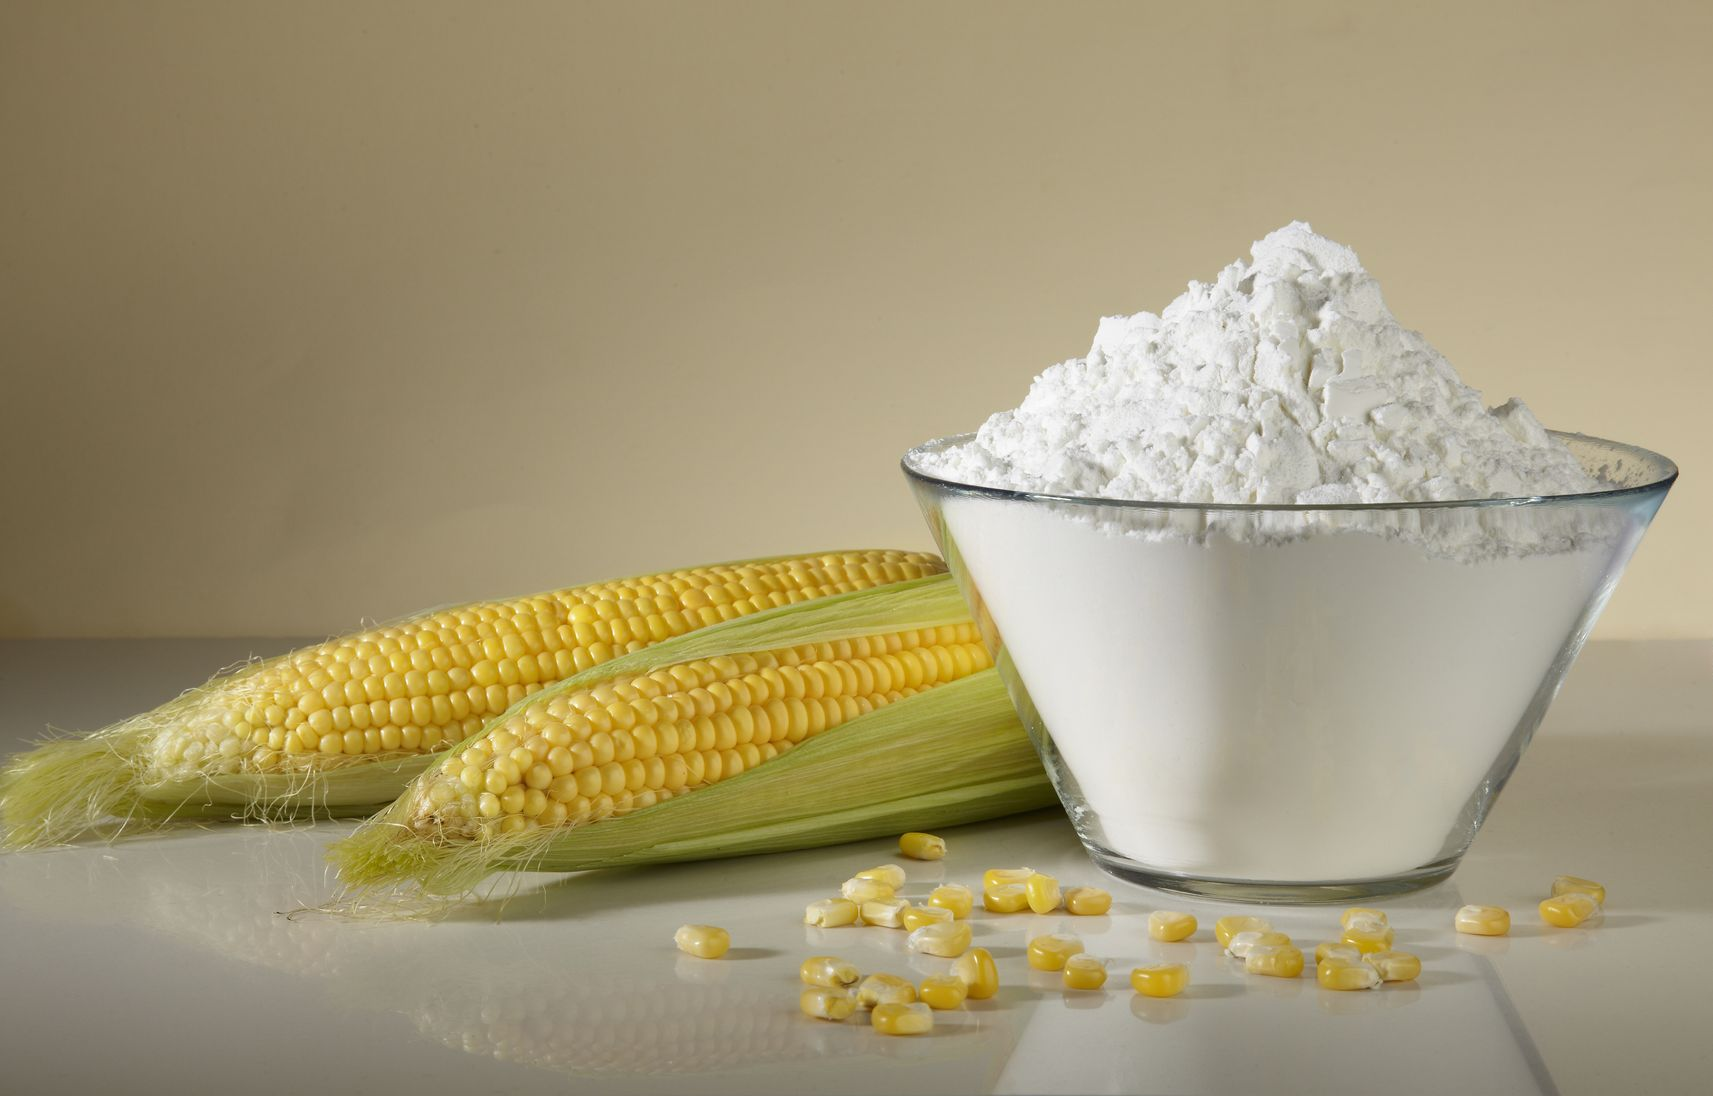 Starch, Maize starch, Corn starch, Indian starch, Modified starch, Native starch, Food grade starch